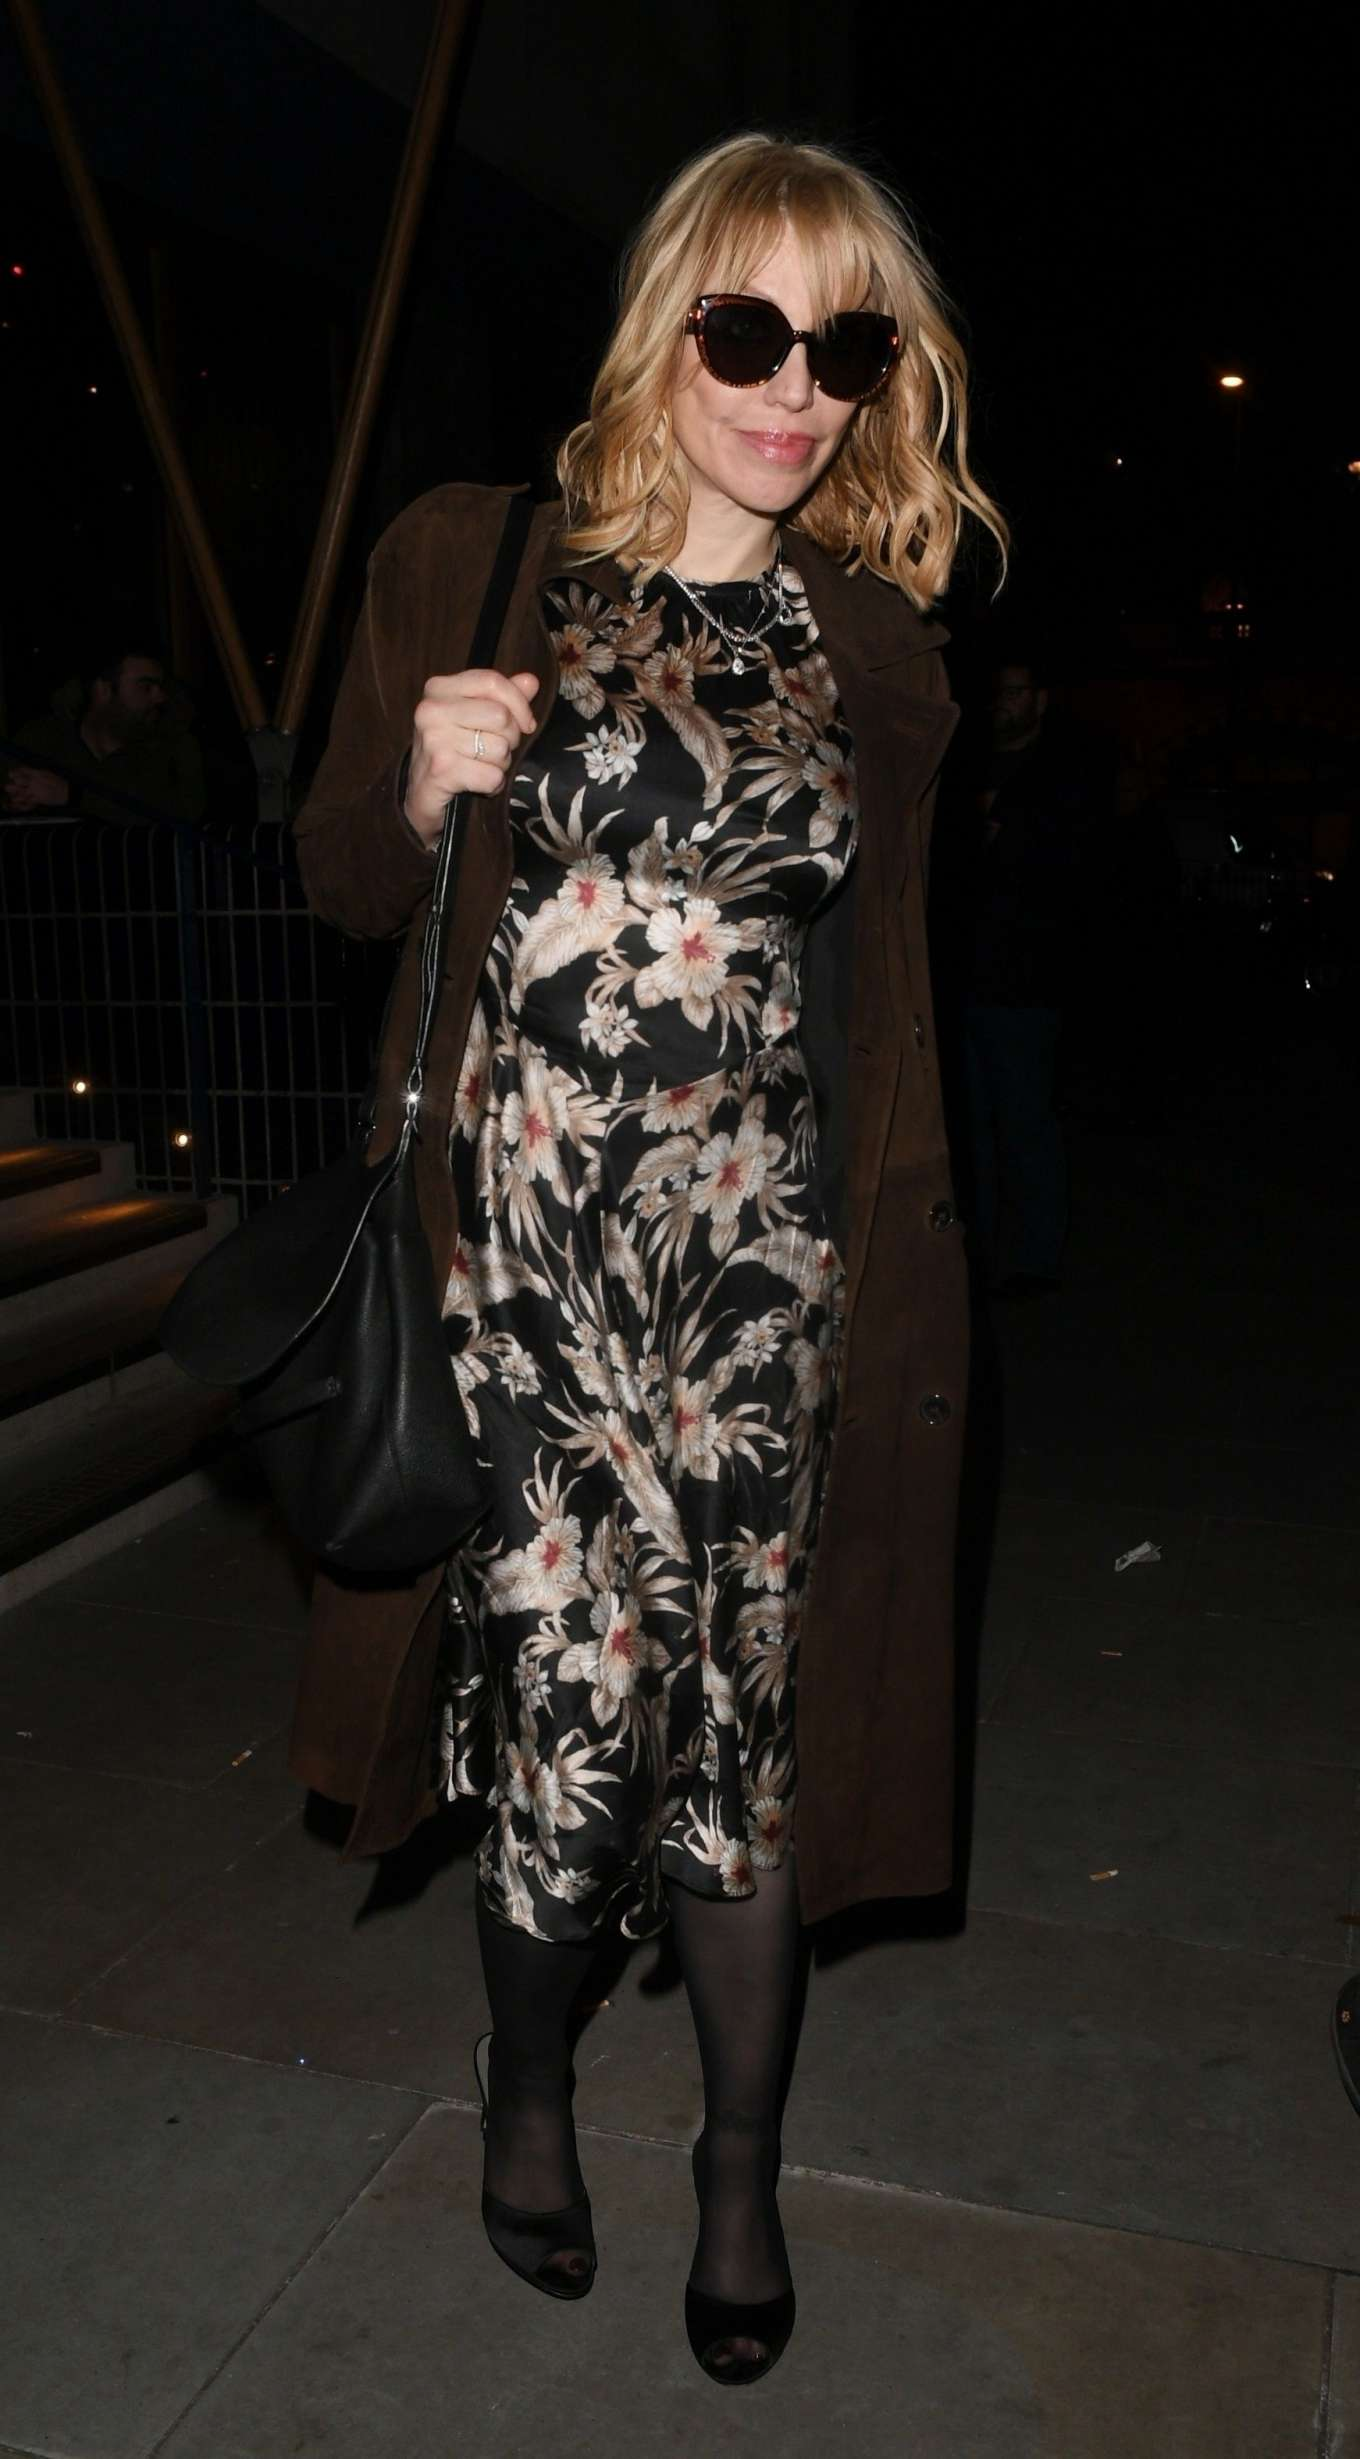 Courtney Love 2020 : Courtney Love attend the Love Magazine party in London-05